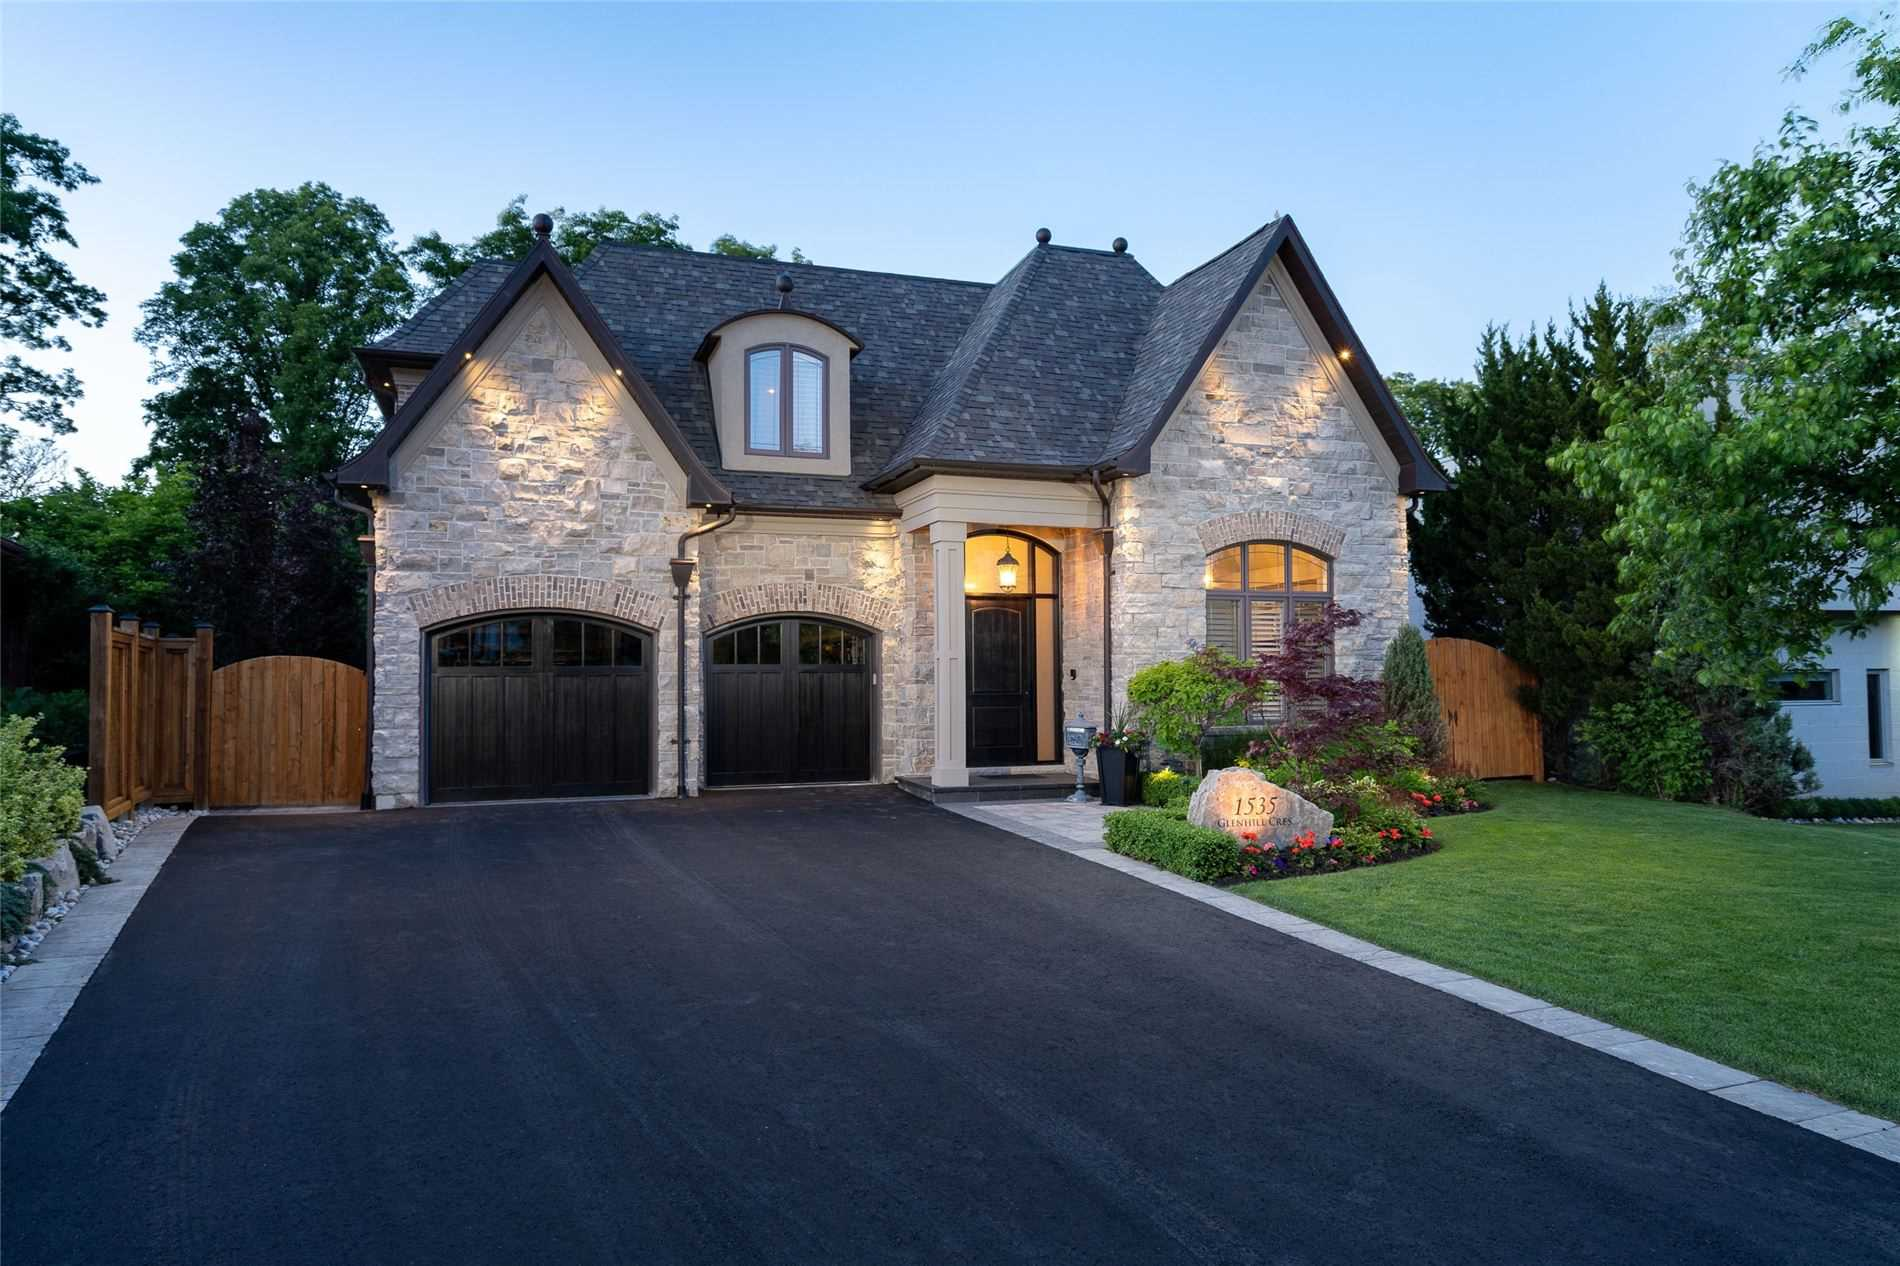 1535 Glenhill Cres, Mississauga, Ontario L5H3C4, 4 Bedrooms Bedrooms, 12 Rooms Rooms,5 BathroomsBathrooms,Detached,For Sale,Glenhill,W4796099